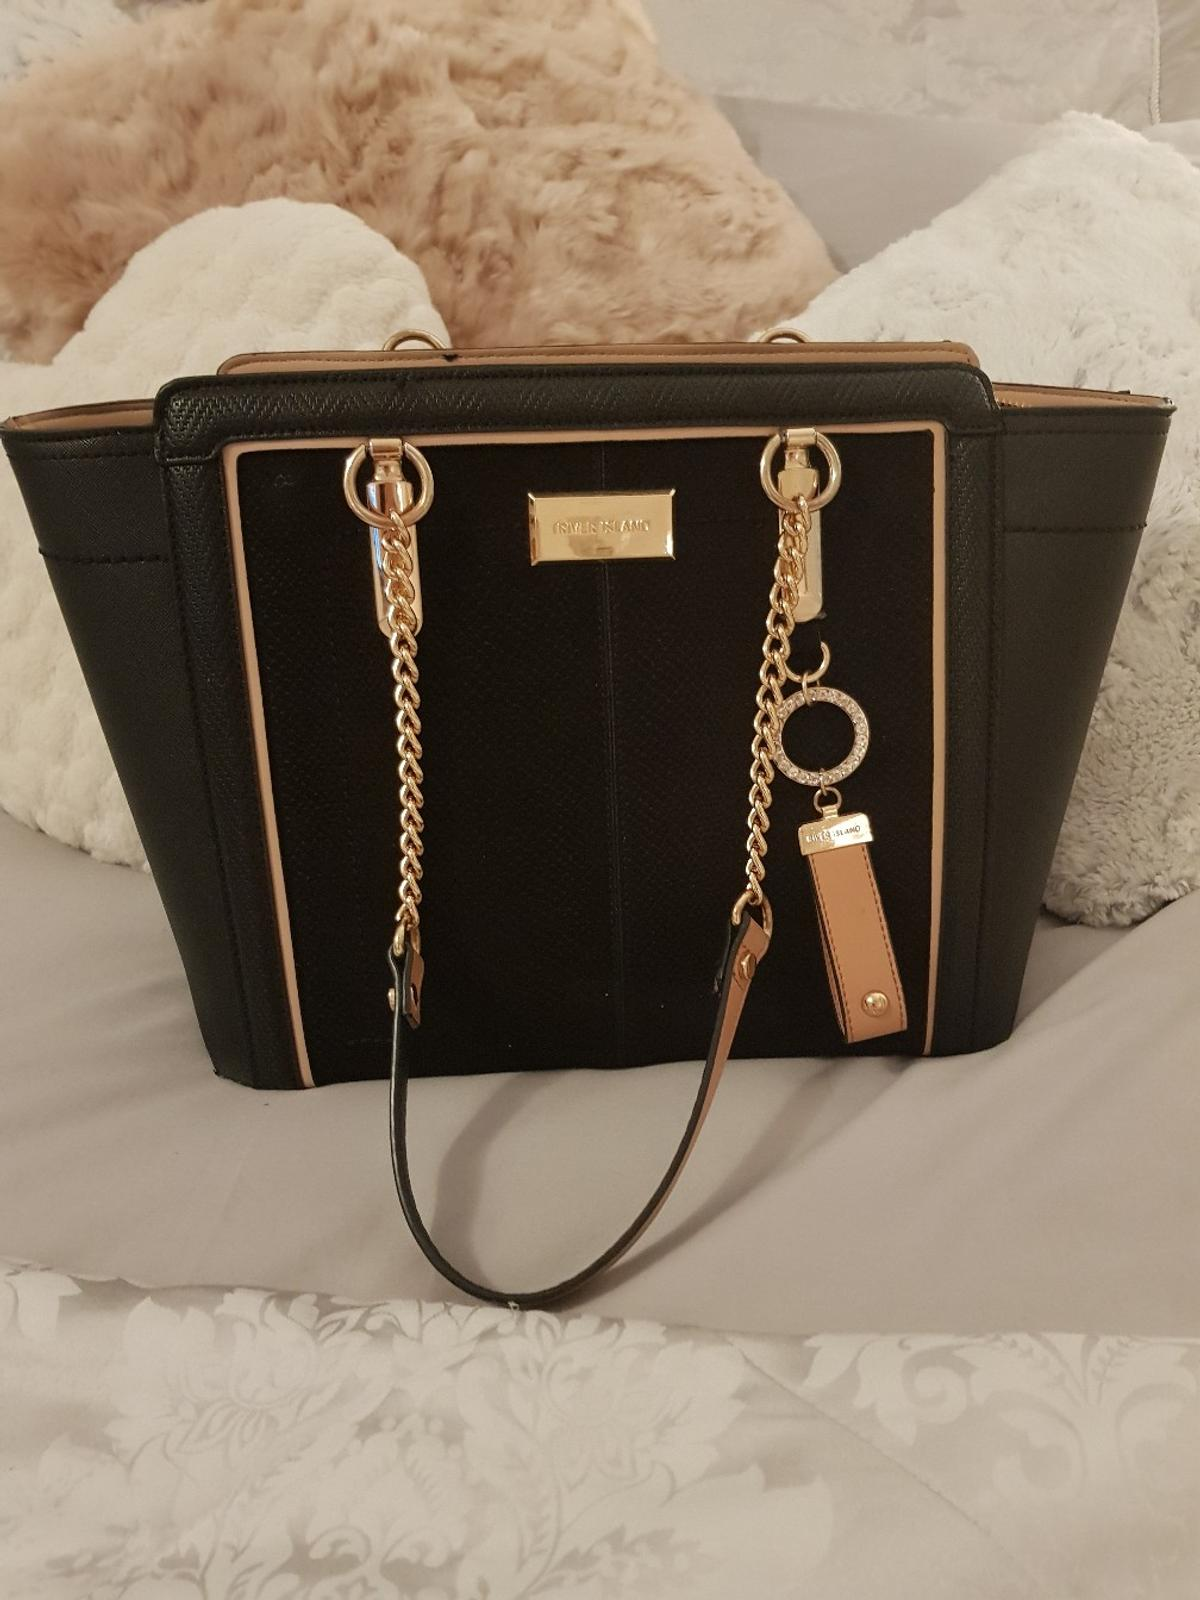 pre order brand new pretty cheap handbags for sale from TK Maxx and River Isla in LU5 Dunstable for ...